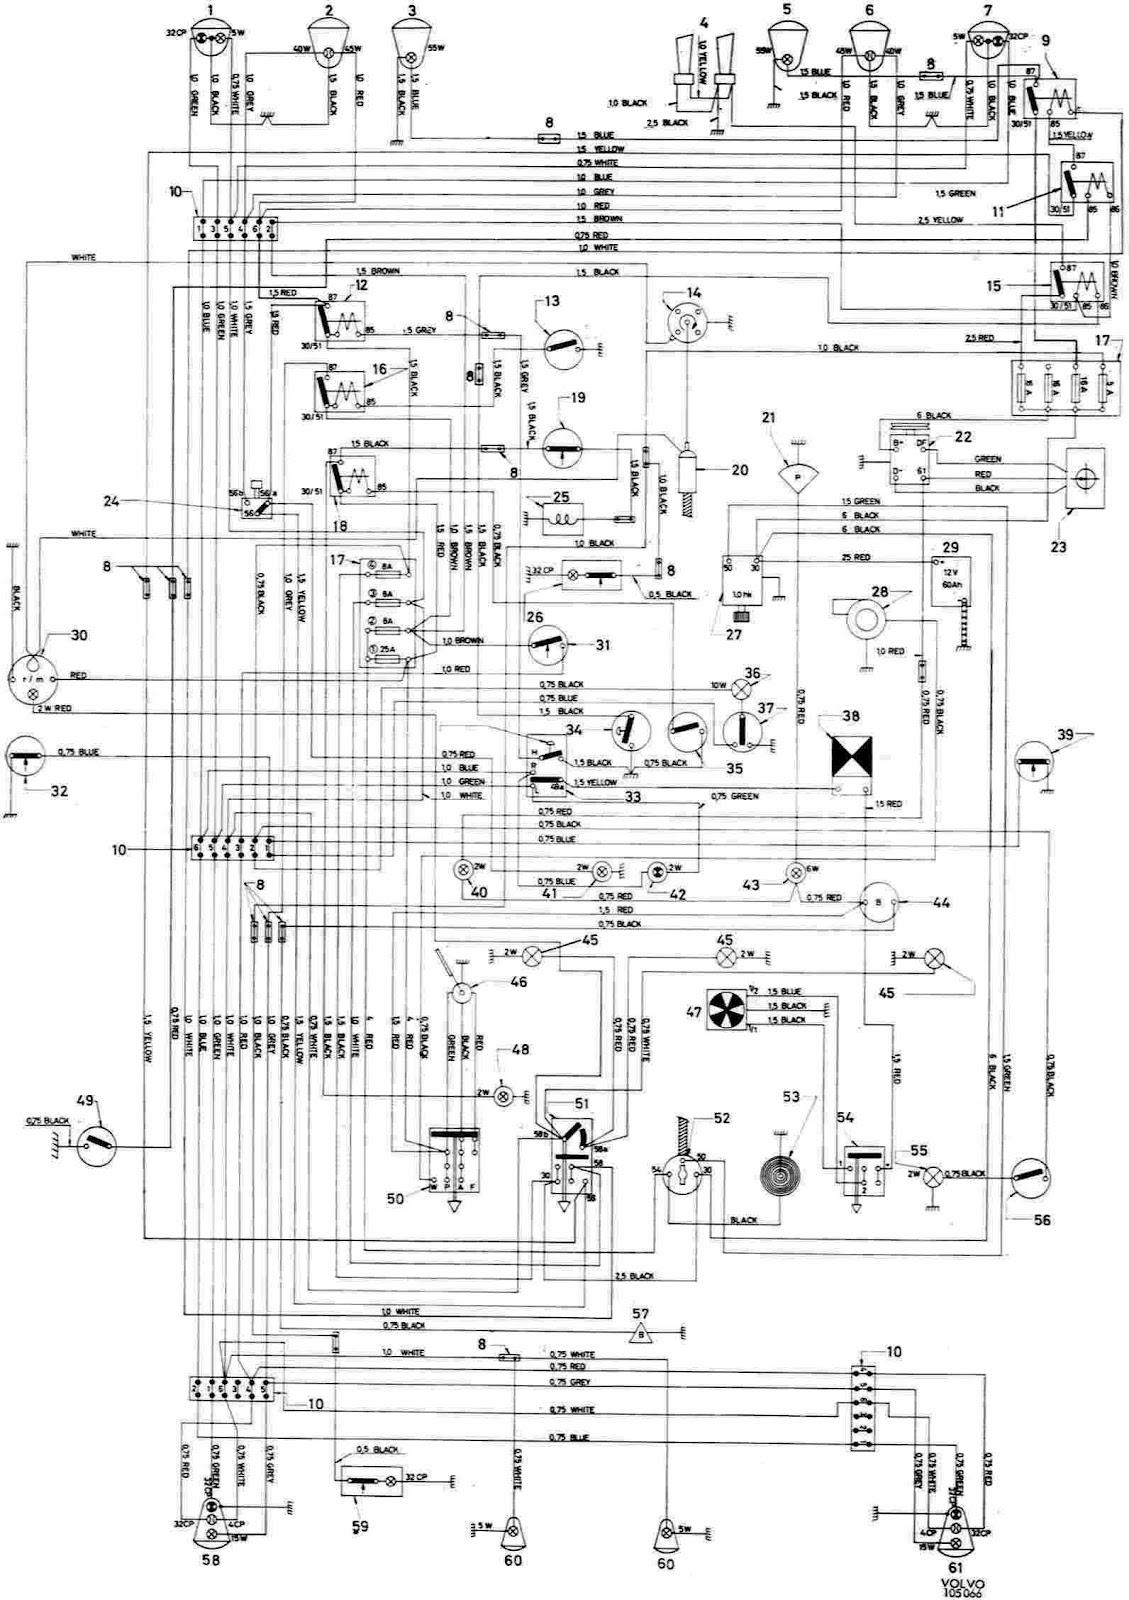 Volvo+123+GT+Complete+Wiring+Diagram hu 613 wiring diagram boat wiring diagram \u2022 wiring diagrams j 1991 volvo 740 radio wiring diagram at gsmx.co